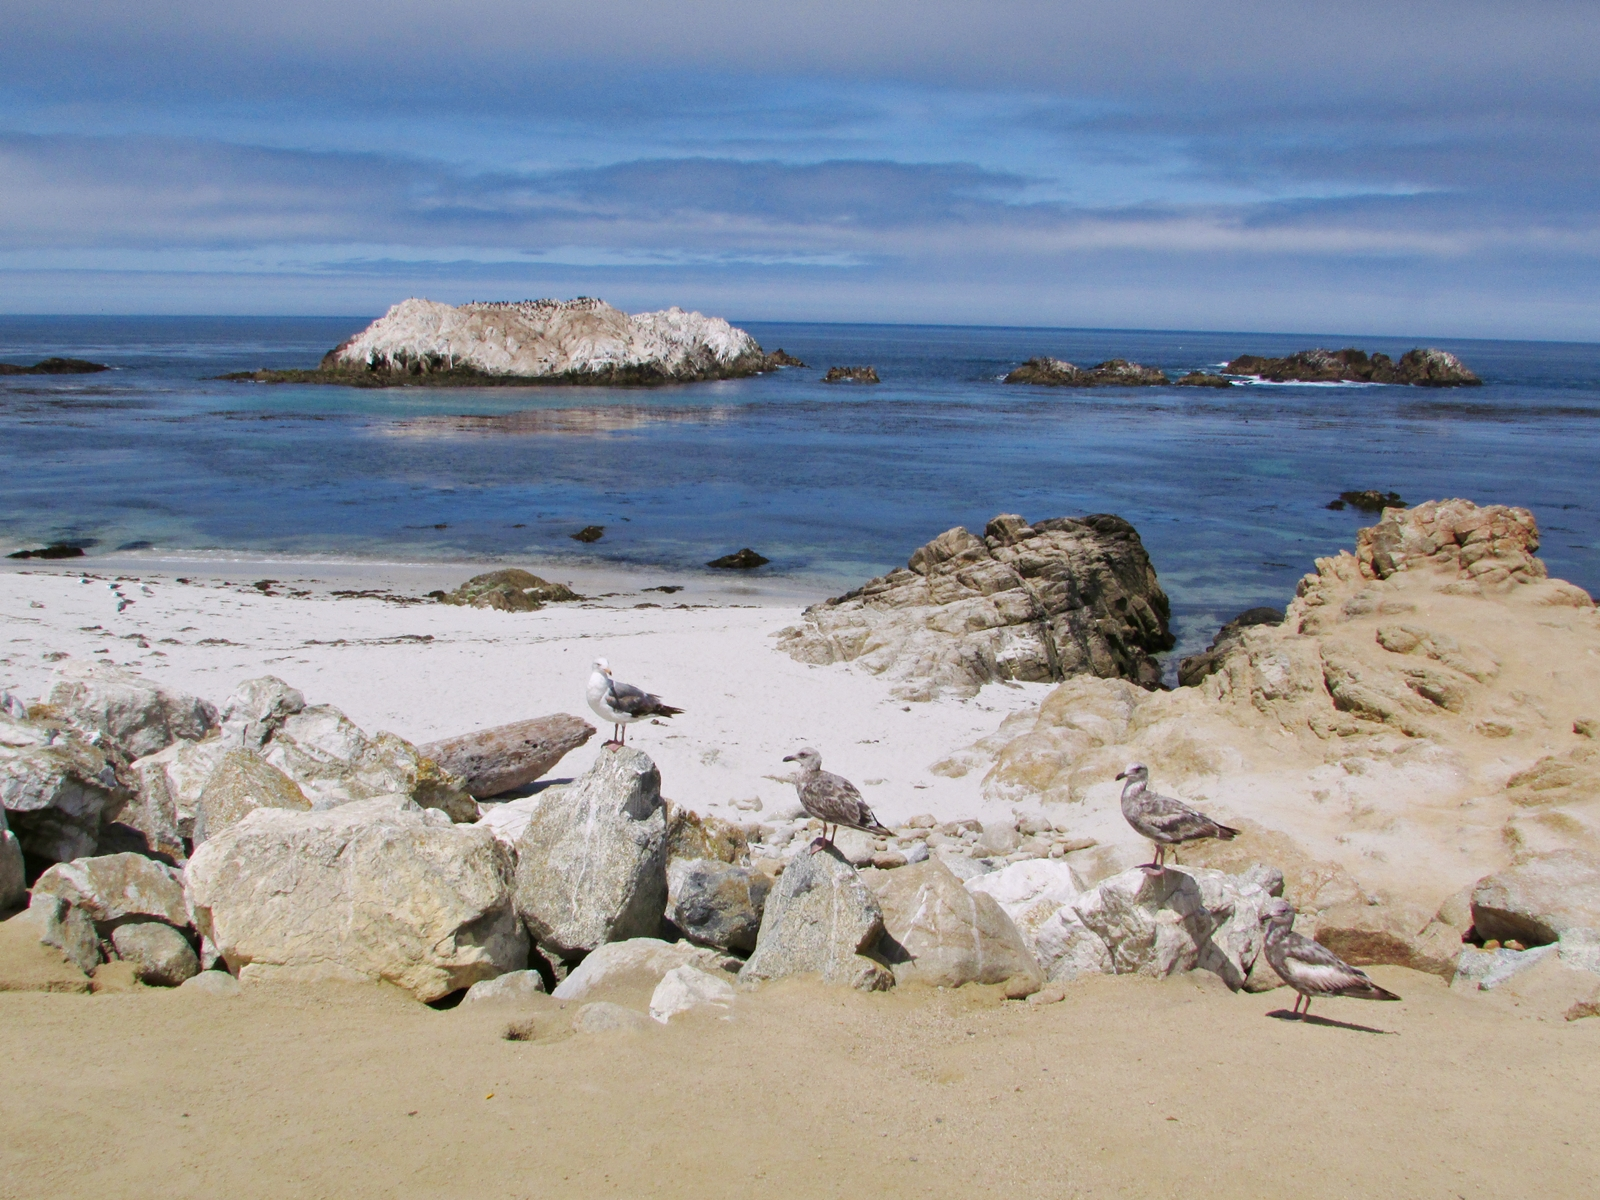 USA Rundreise - Amerika Westküste - 17-Mile Drive - Bird Rock - Fashionladyloves - Travelblog - Reise Blog